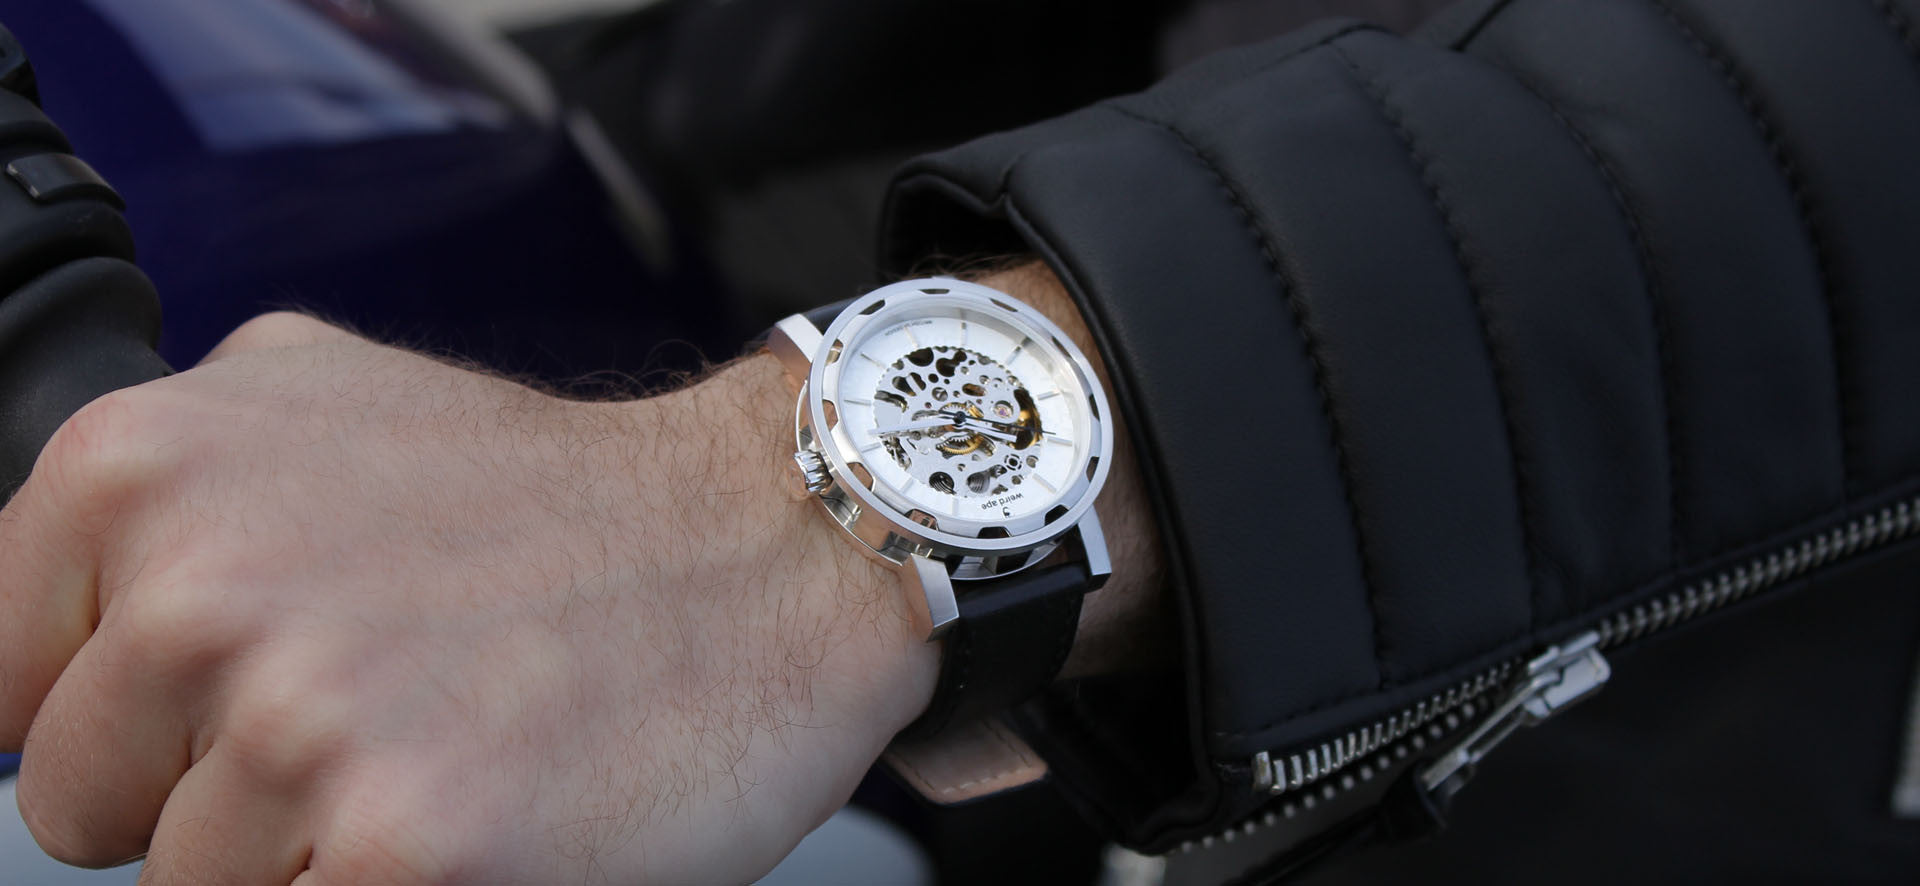 Silver skeleton watch with a black strap in a lifestyle image